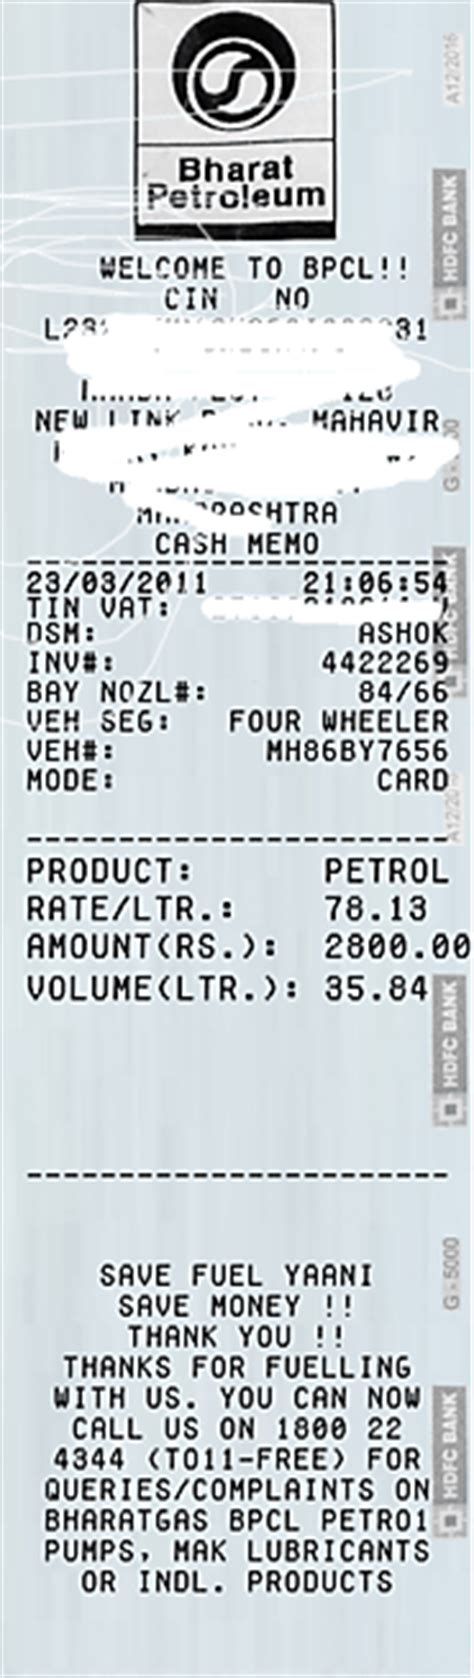 arco receipt template gas receipt if youre saying to yourself hey dave didnt